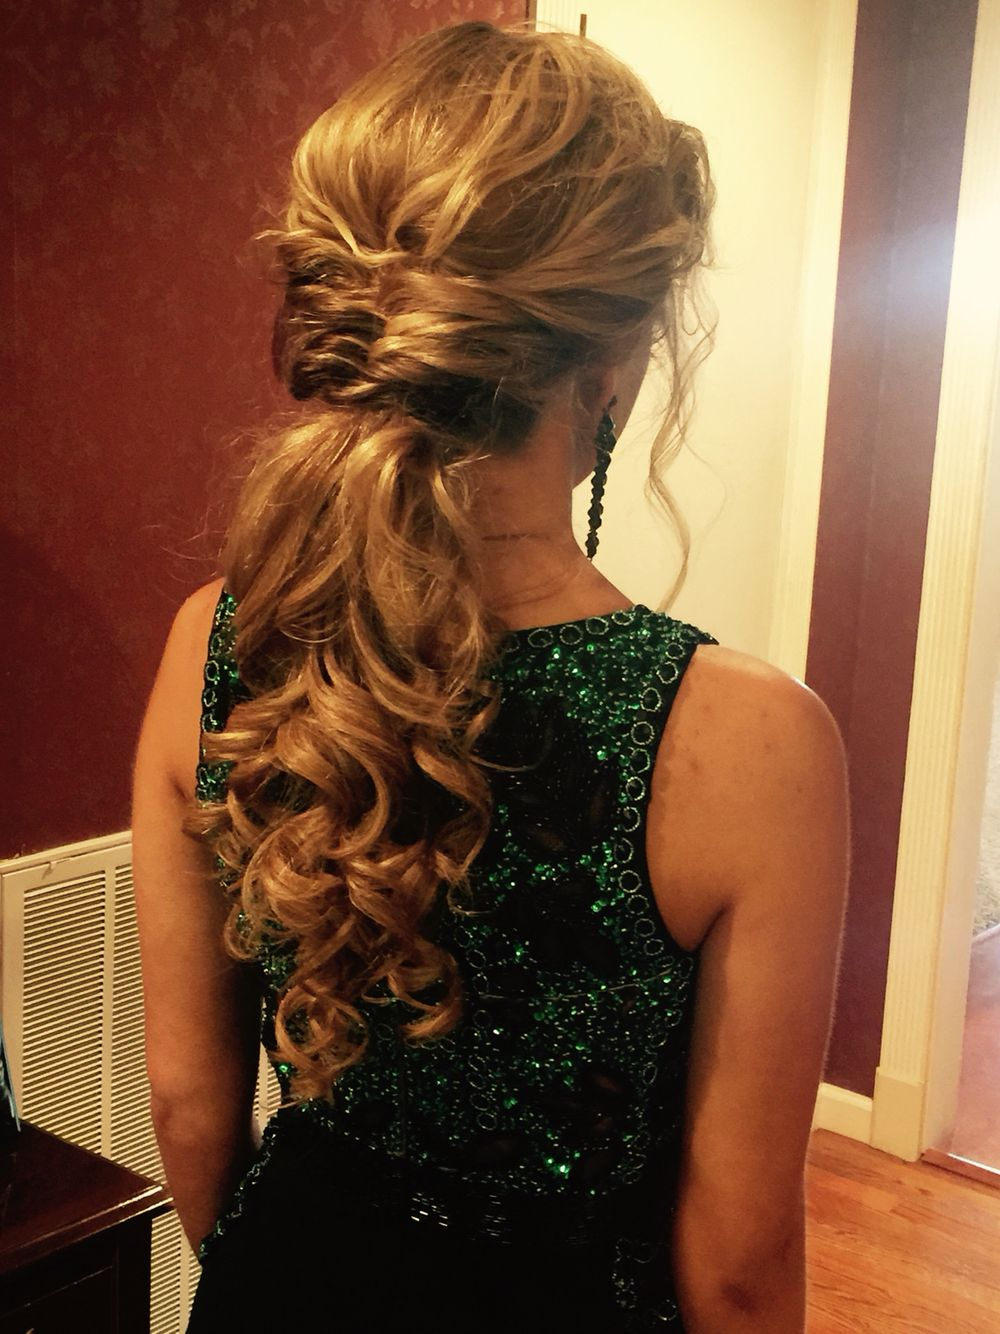 low pony tail for prom #ponytail #hairstyle #prom #wedding